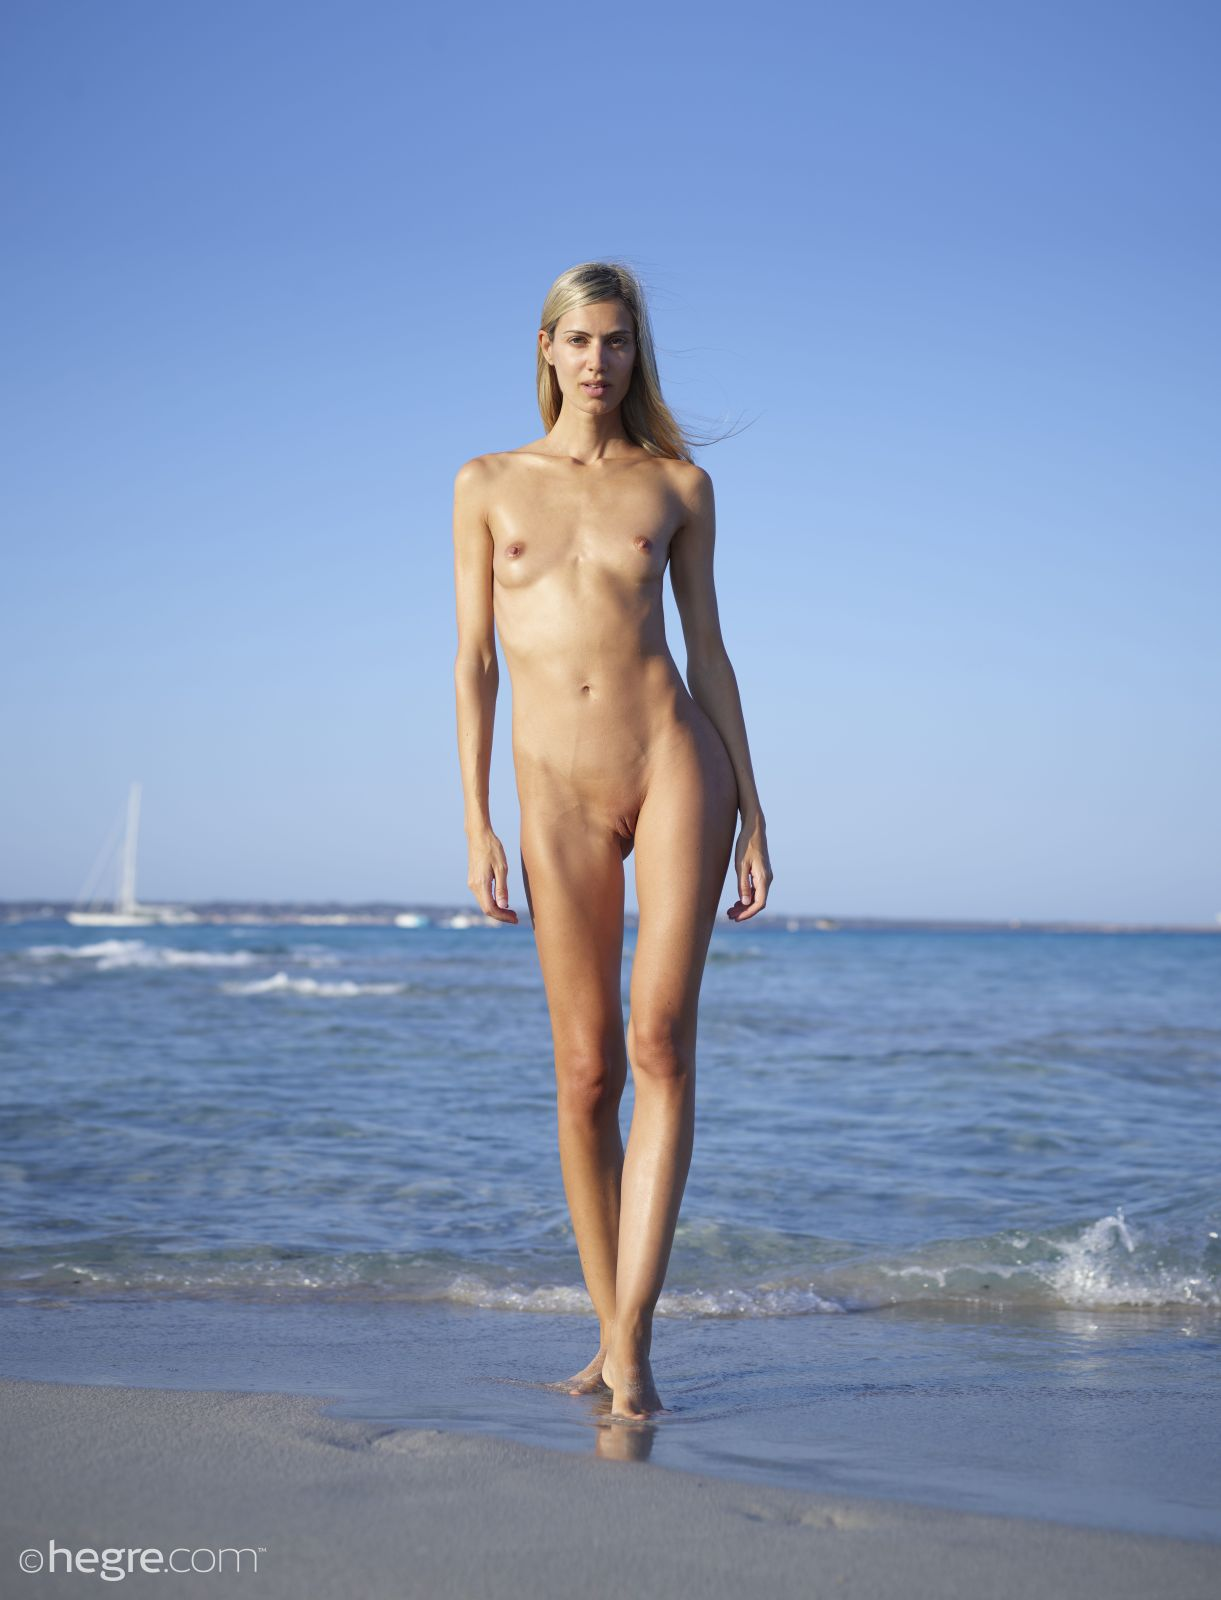 Tall blonde naked women images